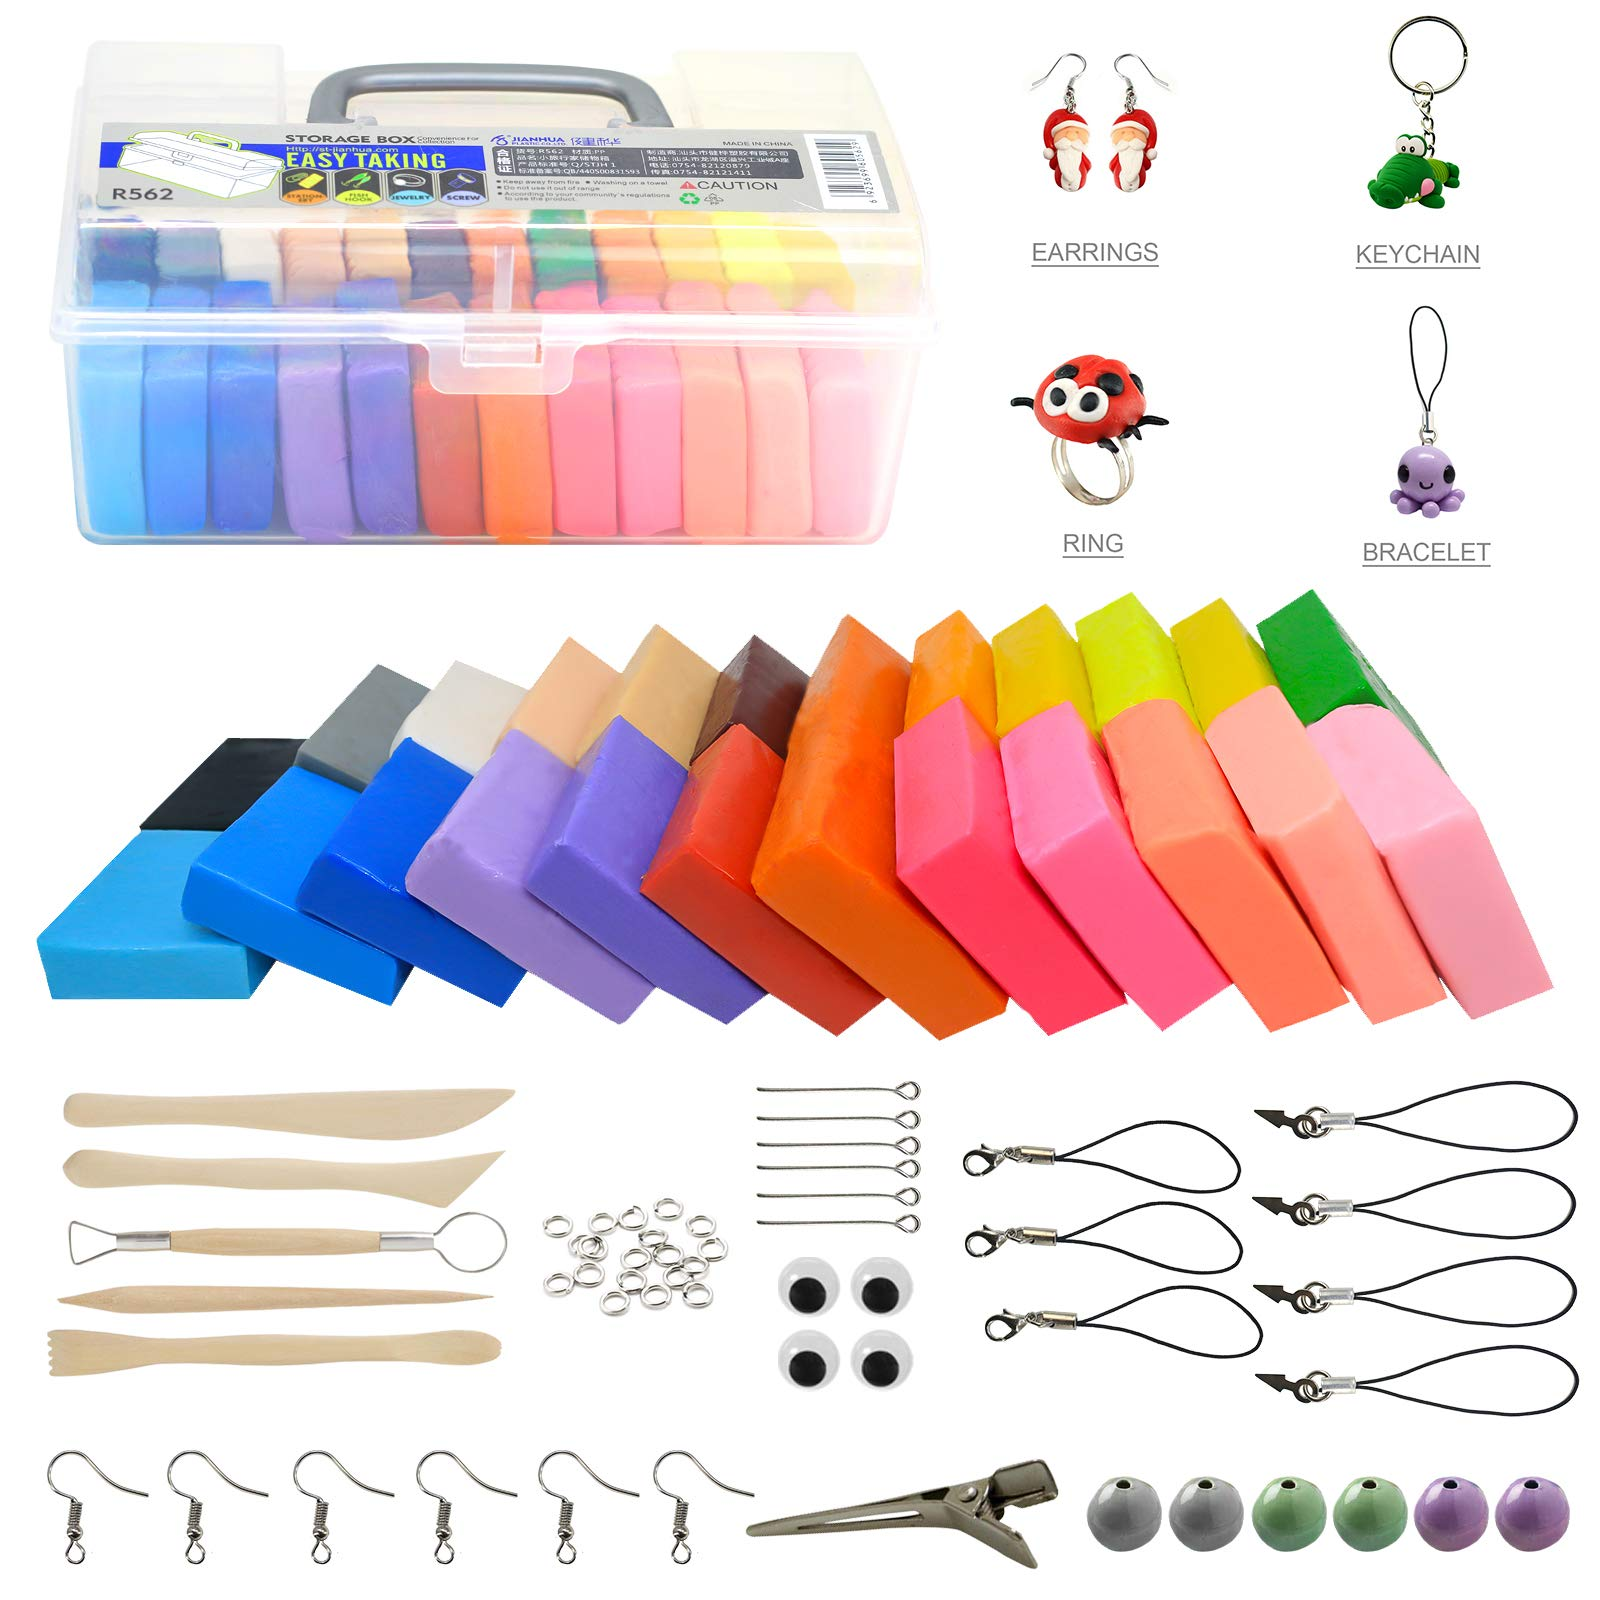 Polymer Clay Kit, Ultra Soft & Stretchable Baking Molding Clay- 24 Color Blocks with Bonus Tools, Accessories and Easy Storage Box - DIY Modeling Magic Clay Kit for Kids/Adults